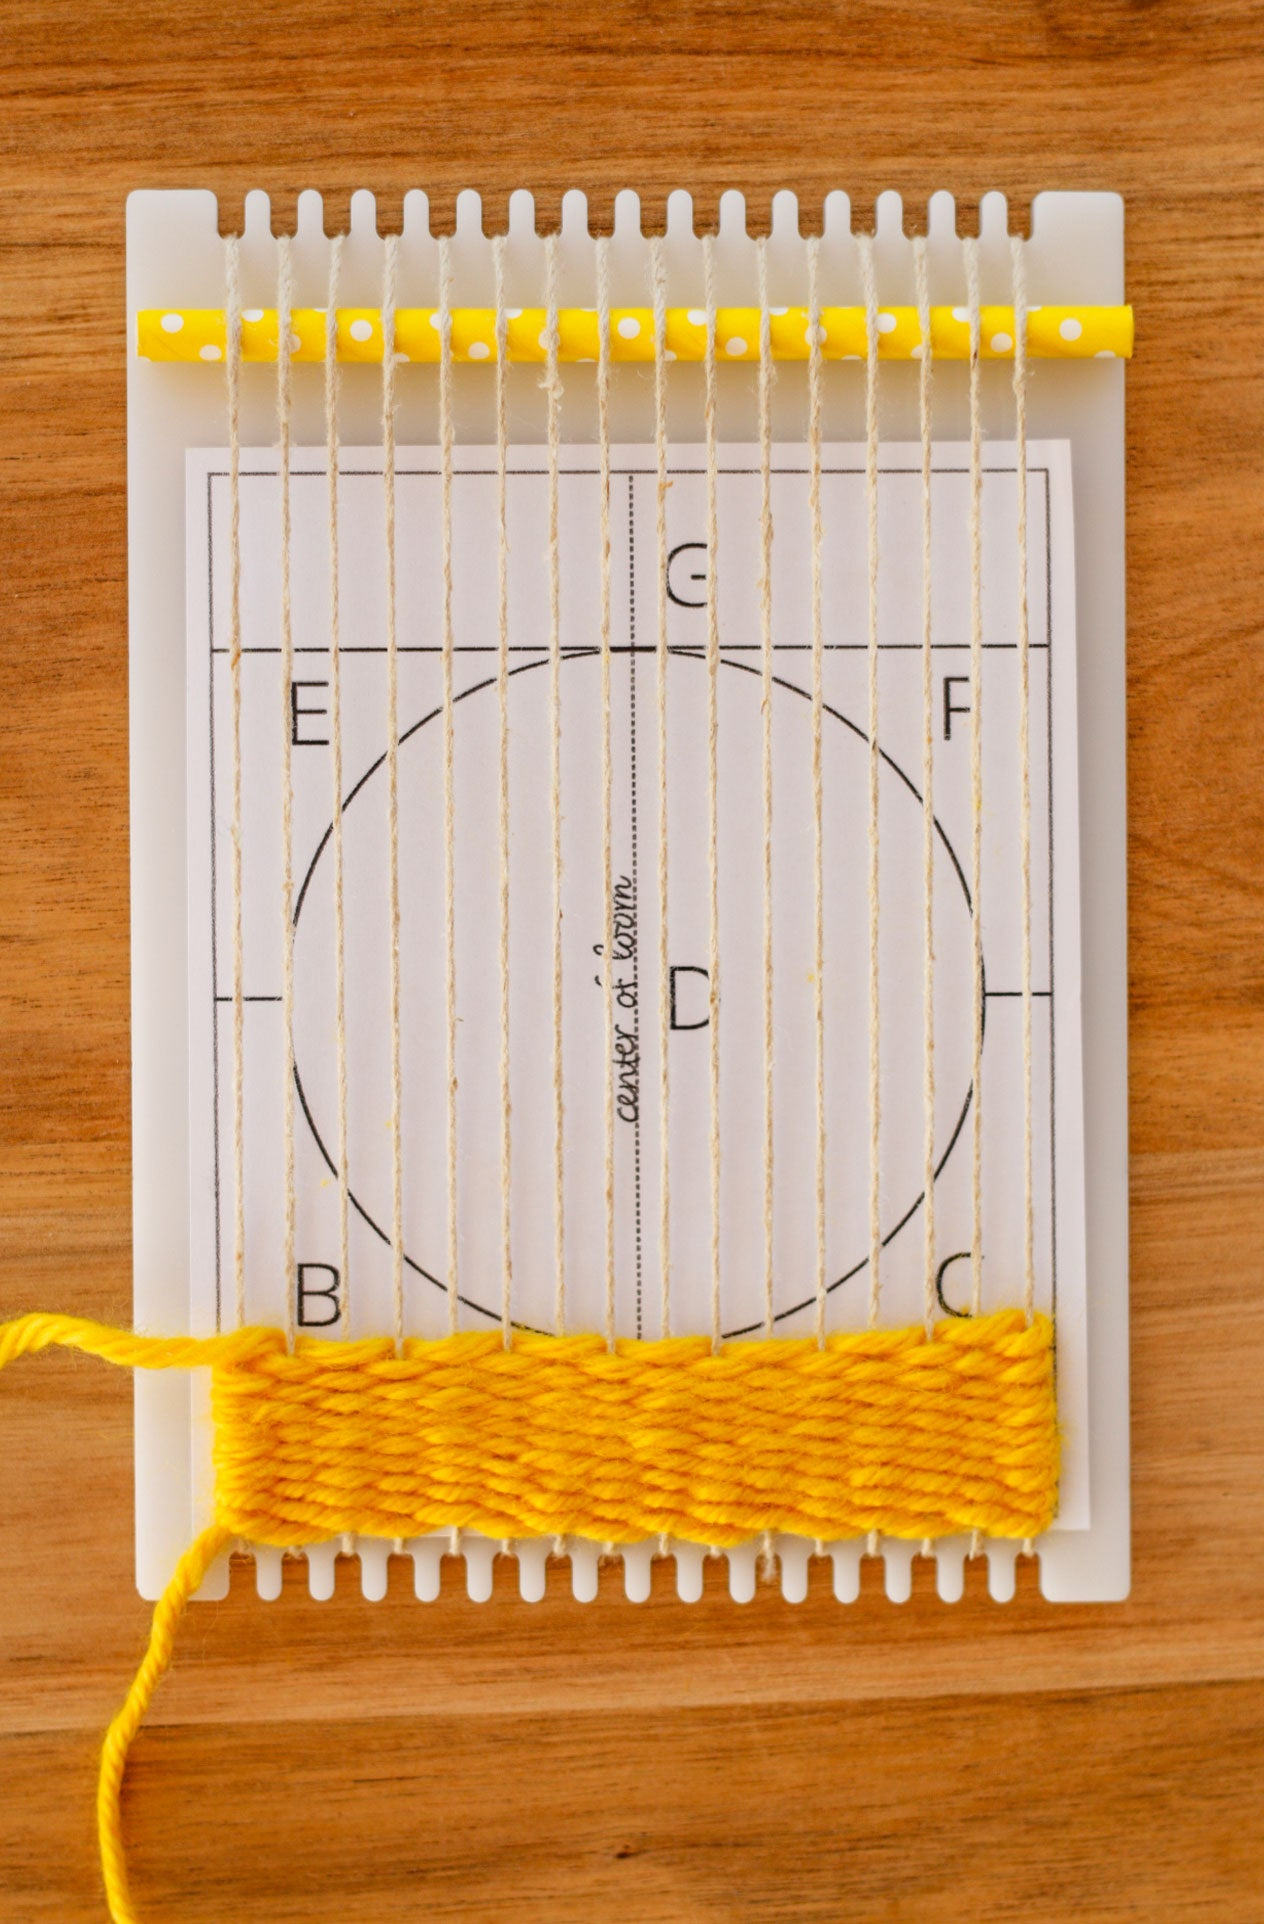 Weaving part A of circle shape